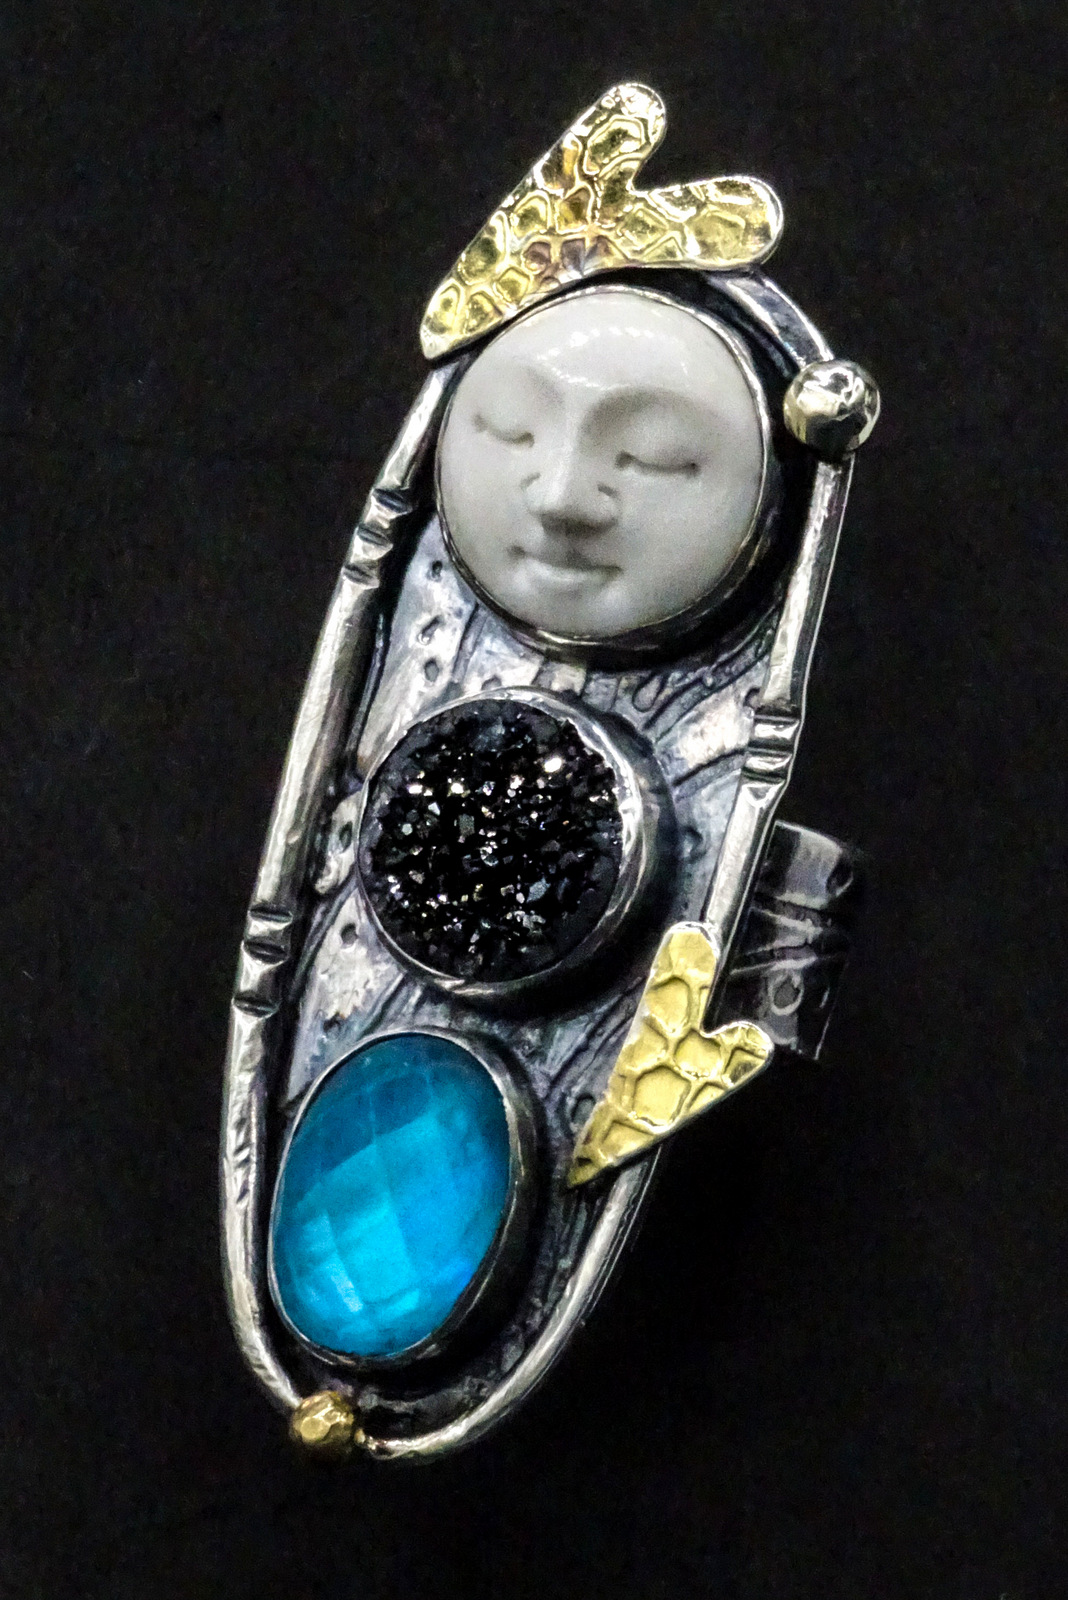 02-Sylvia McCollum, Handcrafted Faces of Courage, Fine Art Silver Jewelry-002.JPG